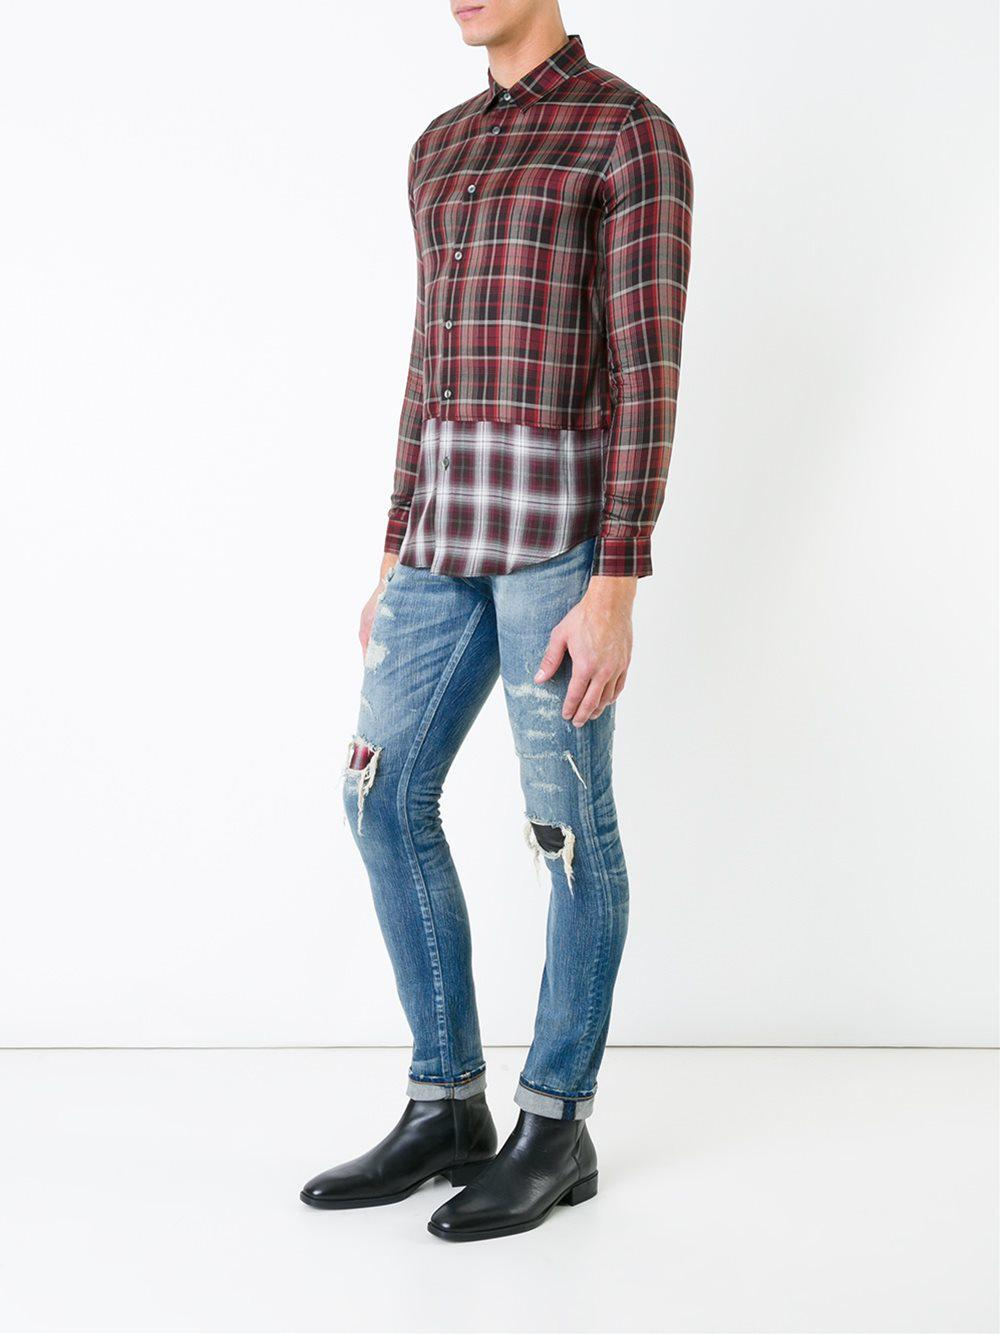 HL Heddie Lovu Wool Panelled Checked Shirt in Red for Men